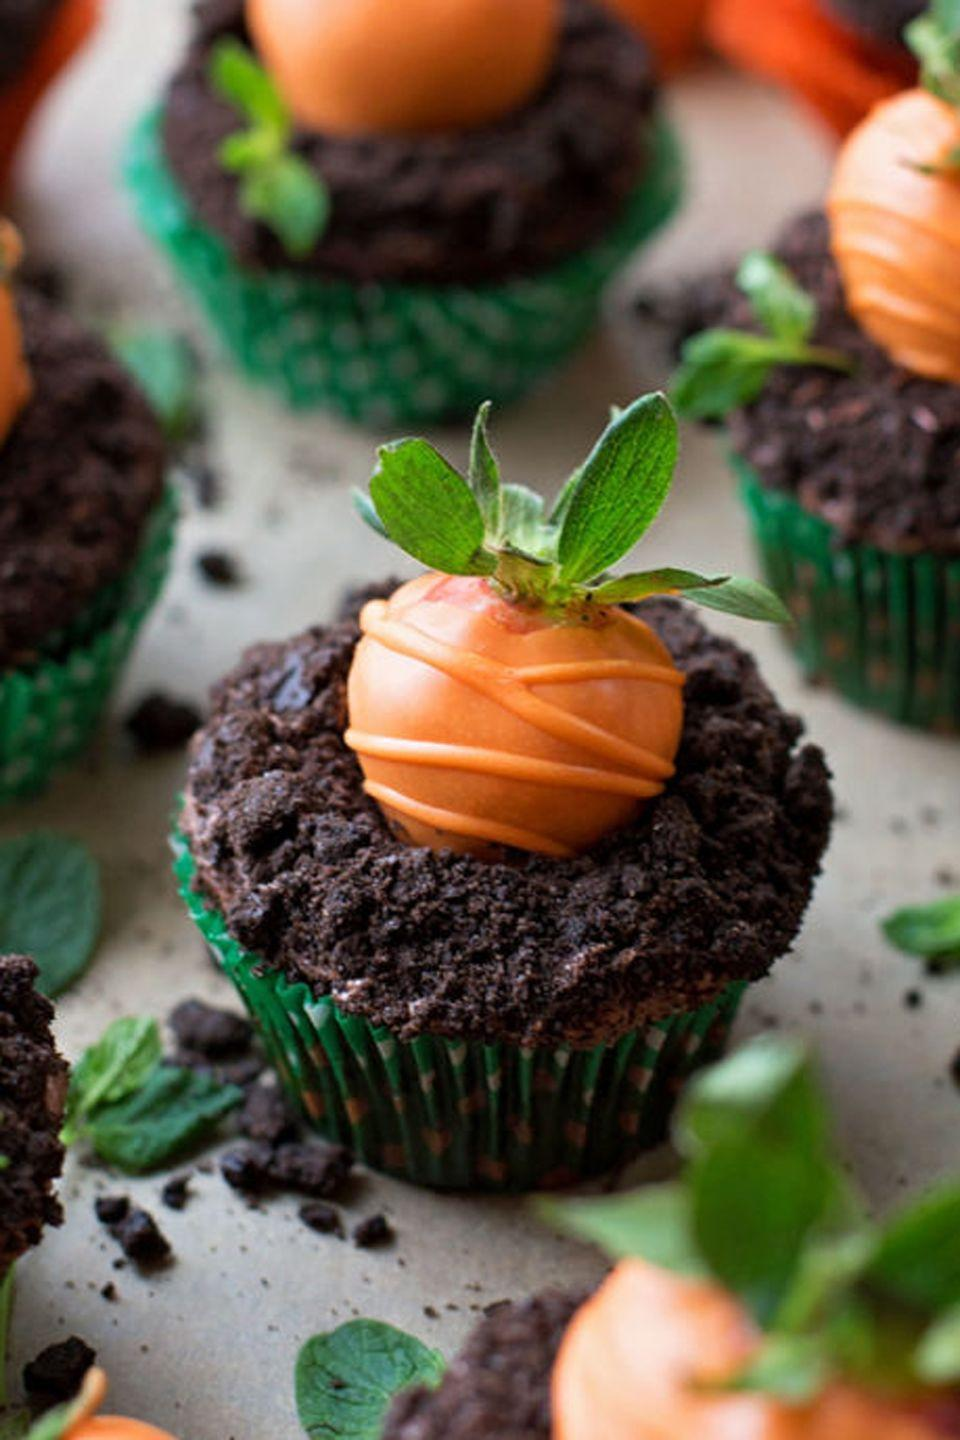 """<p>Rumor has it that the Easter bunny <em>might </em>make a pit stop at your house if you have these chocolate-strawberry treats out on the table. </p><p><a href=""""https://lifemadesimplebakes.com/2016/03/carrot-patch-cupcakes/"""" rel=""""nofollow noopener"""" target=""""_blank"""" data-ylk=""""slk:Get the recipe from Life Made Simple »"""" class=""""link rapid-noclick-resp""""><em>Get the recipe from Life Made Simple »</em></a></p>"""